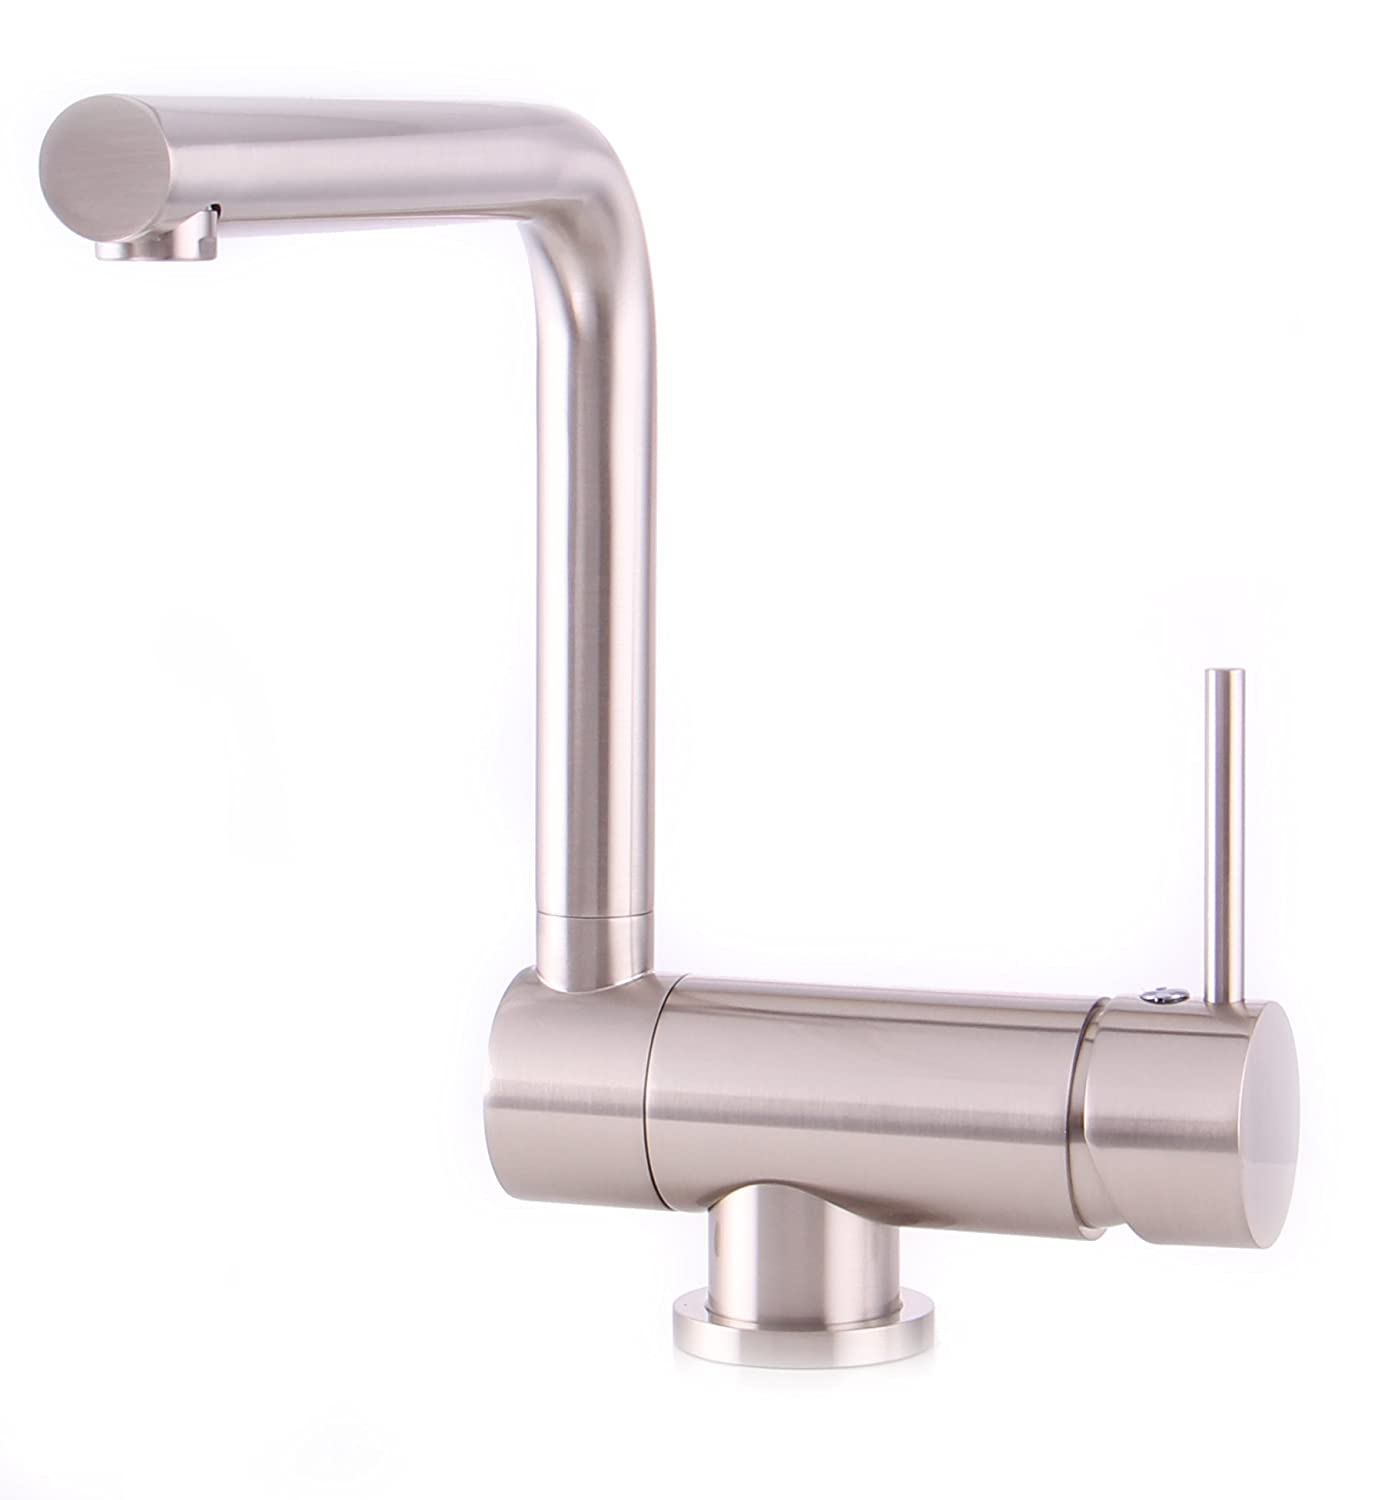 wasserhahn k che vor fenster wandregal k che landhausstil einbauschr nke sitzbank 1 20 ikea. Black Bedroom Furniture Sets. Home Design Ideas